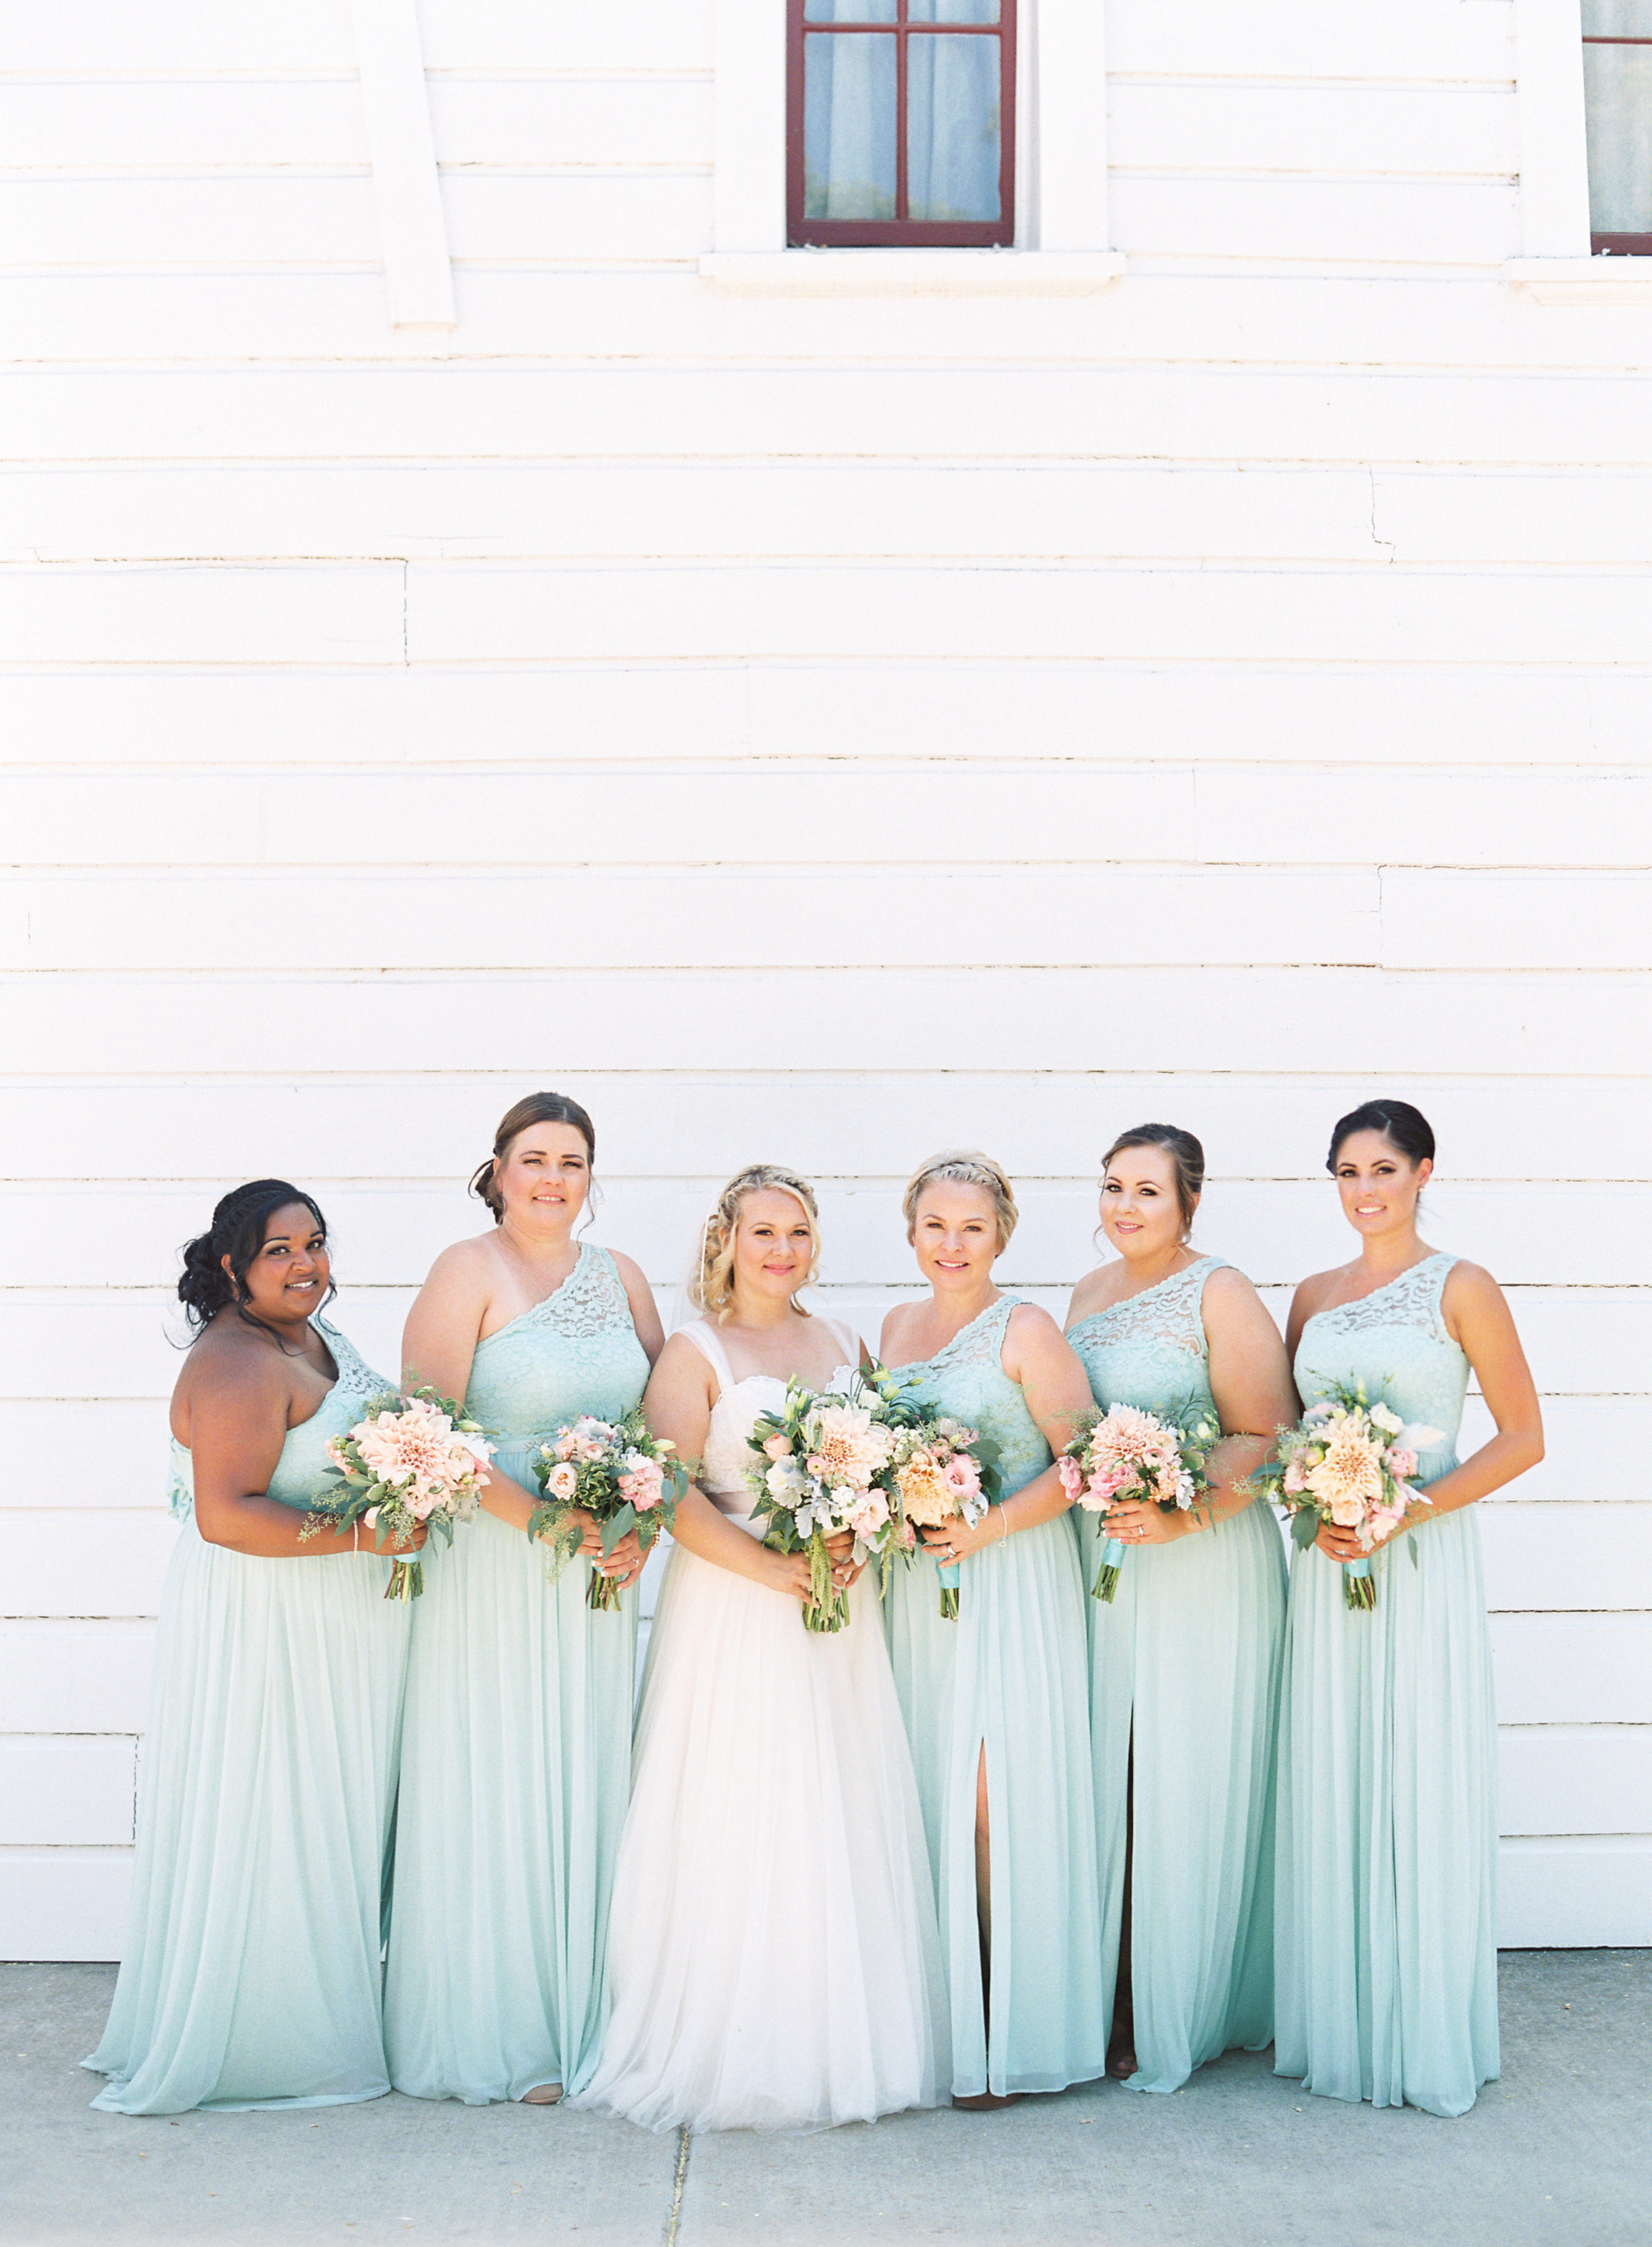 southern-inspired-wedding-at-ravenswood-historic-site-002.jpg